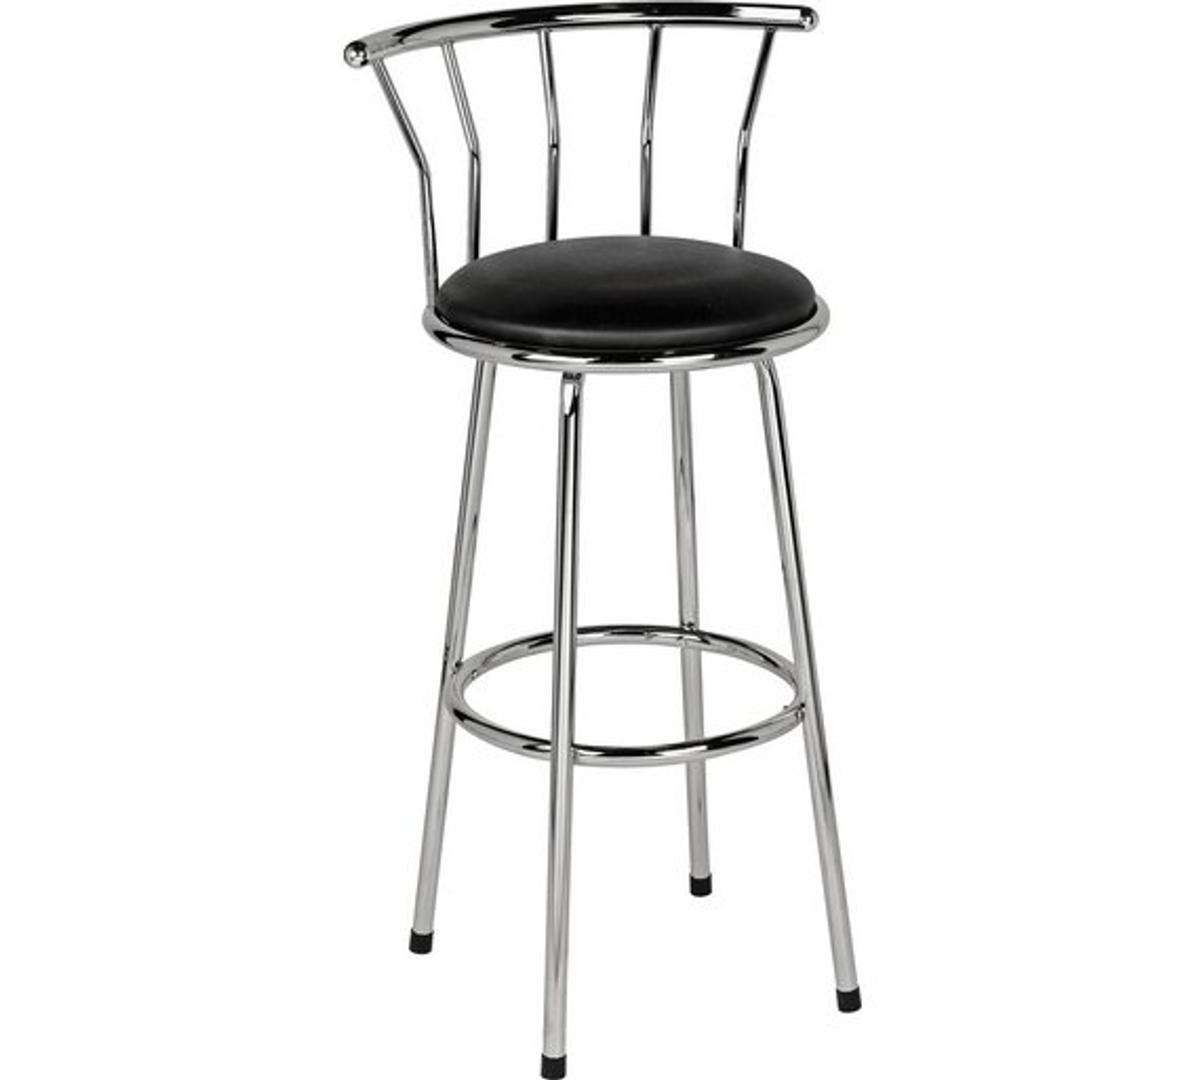 Fine New Leather Effect Bar Stool Black In Bb2 Blackburn For Machost Co Dining Chair Design Ideas Machostcouk